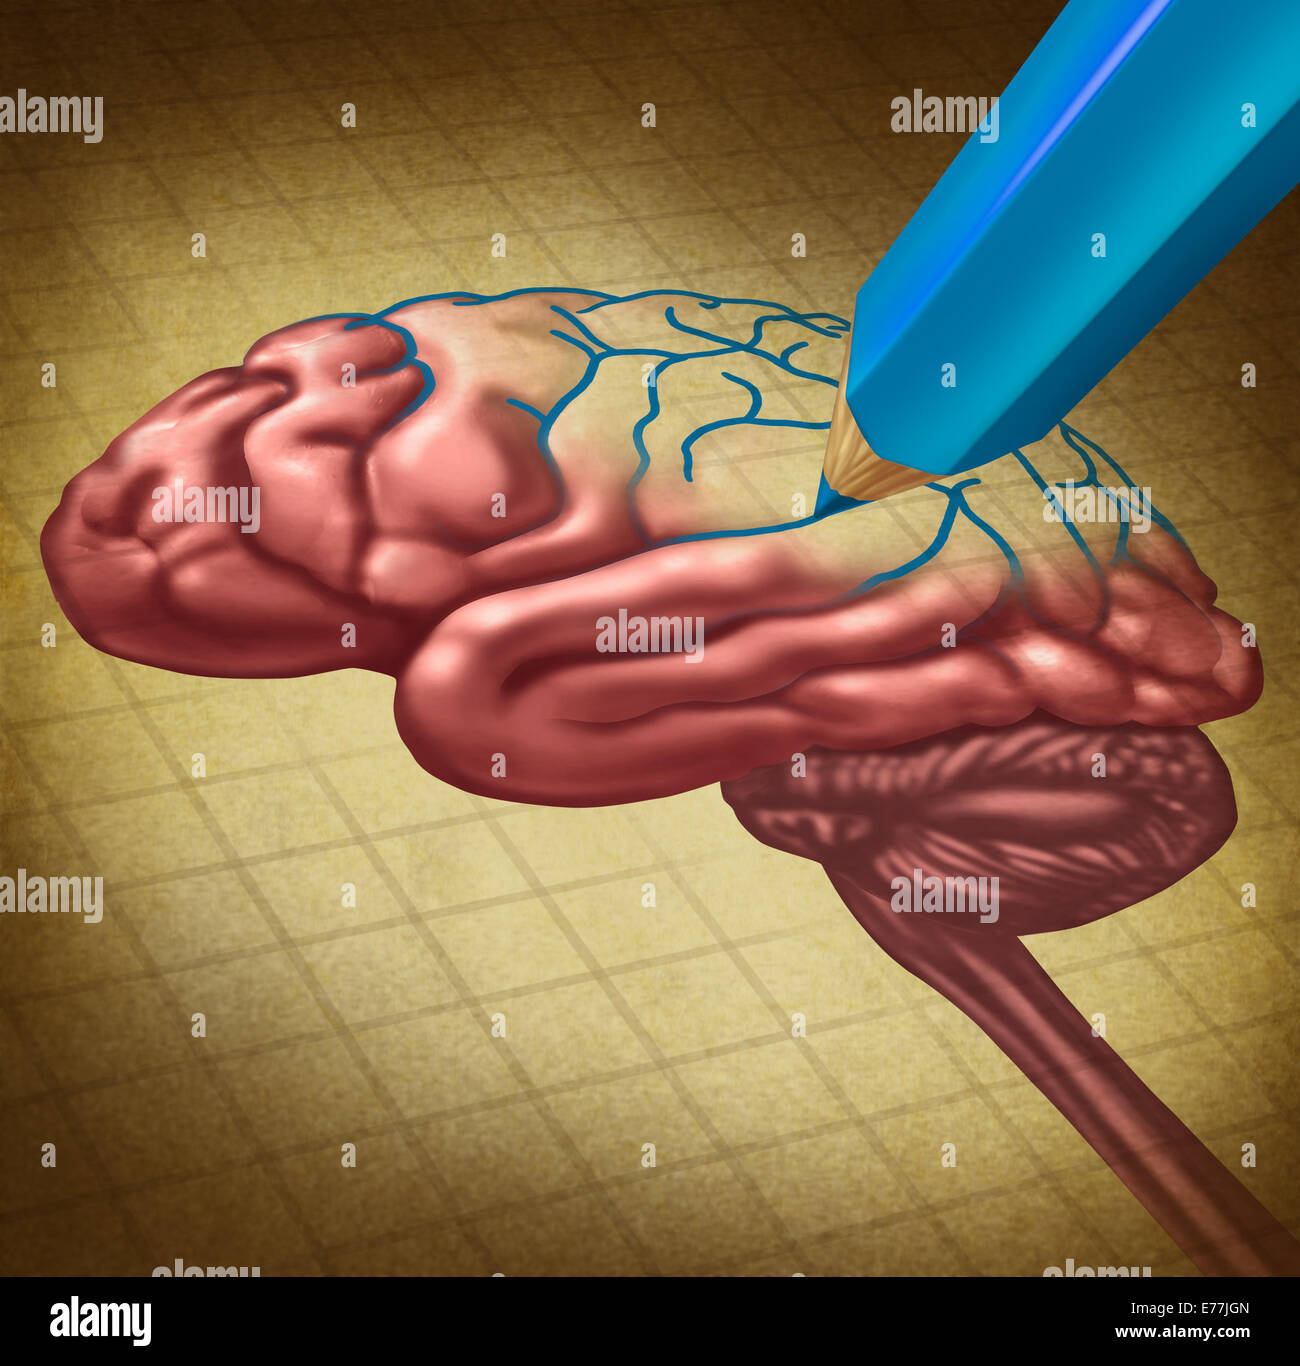 Repairing the brain and restoring lost memory medical concept as a human thinking organ with a missing portion being - Stock Image